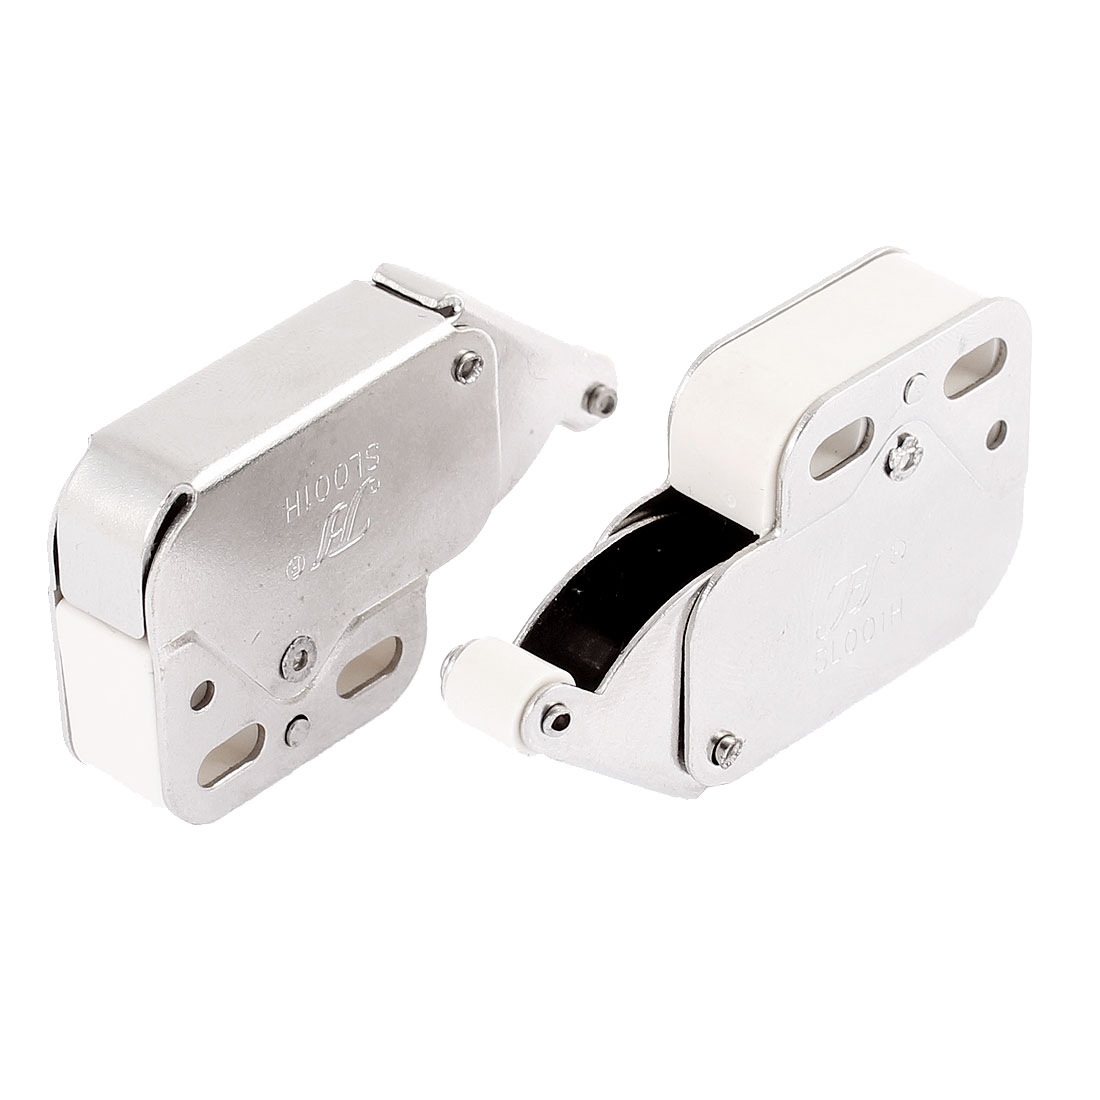 2 Pcs Push Open Touch Release Cabinet Cupboard Kitchen Catch Latch Press Spring